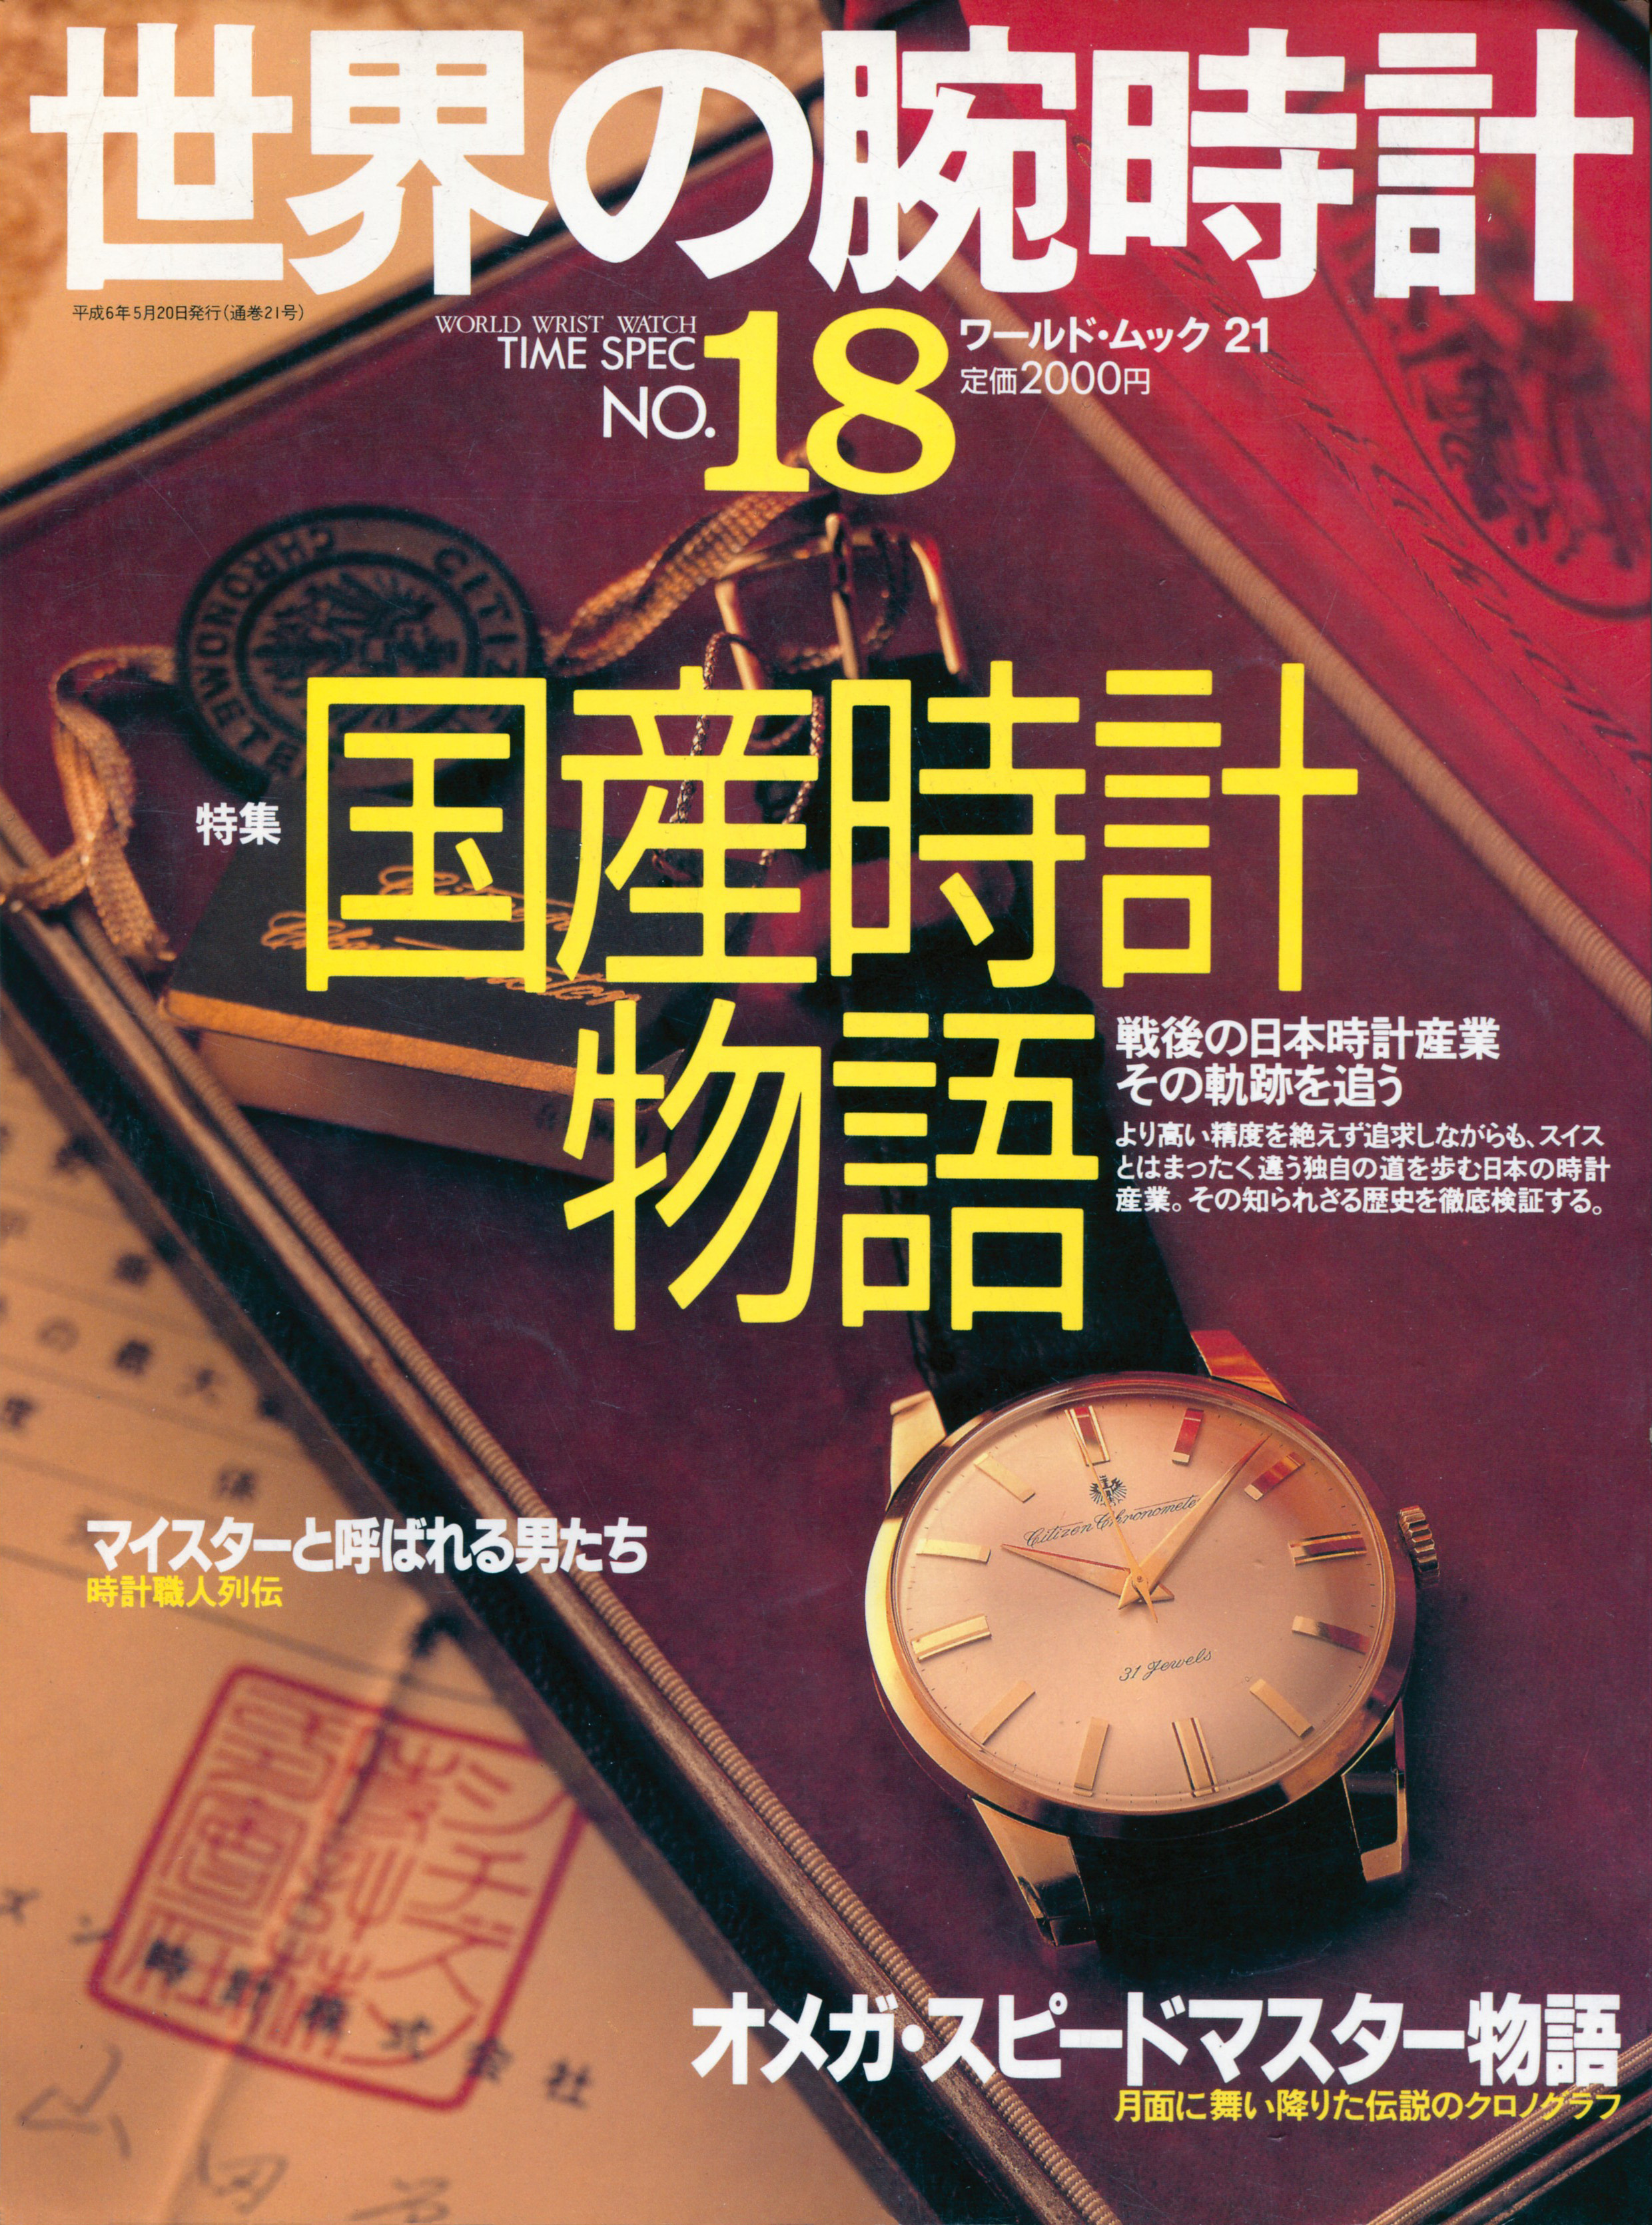 Cover -World Wrist Watch Time Spec No. 18